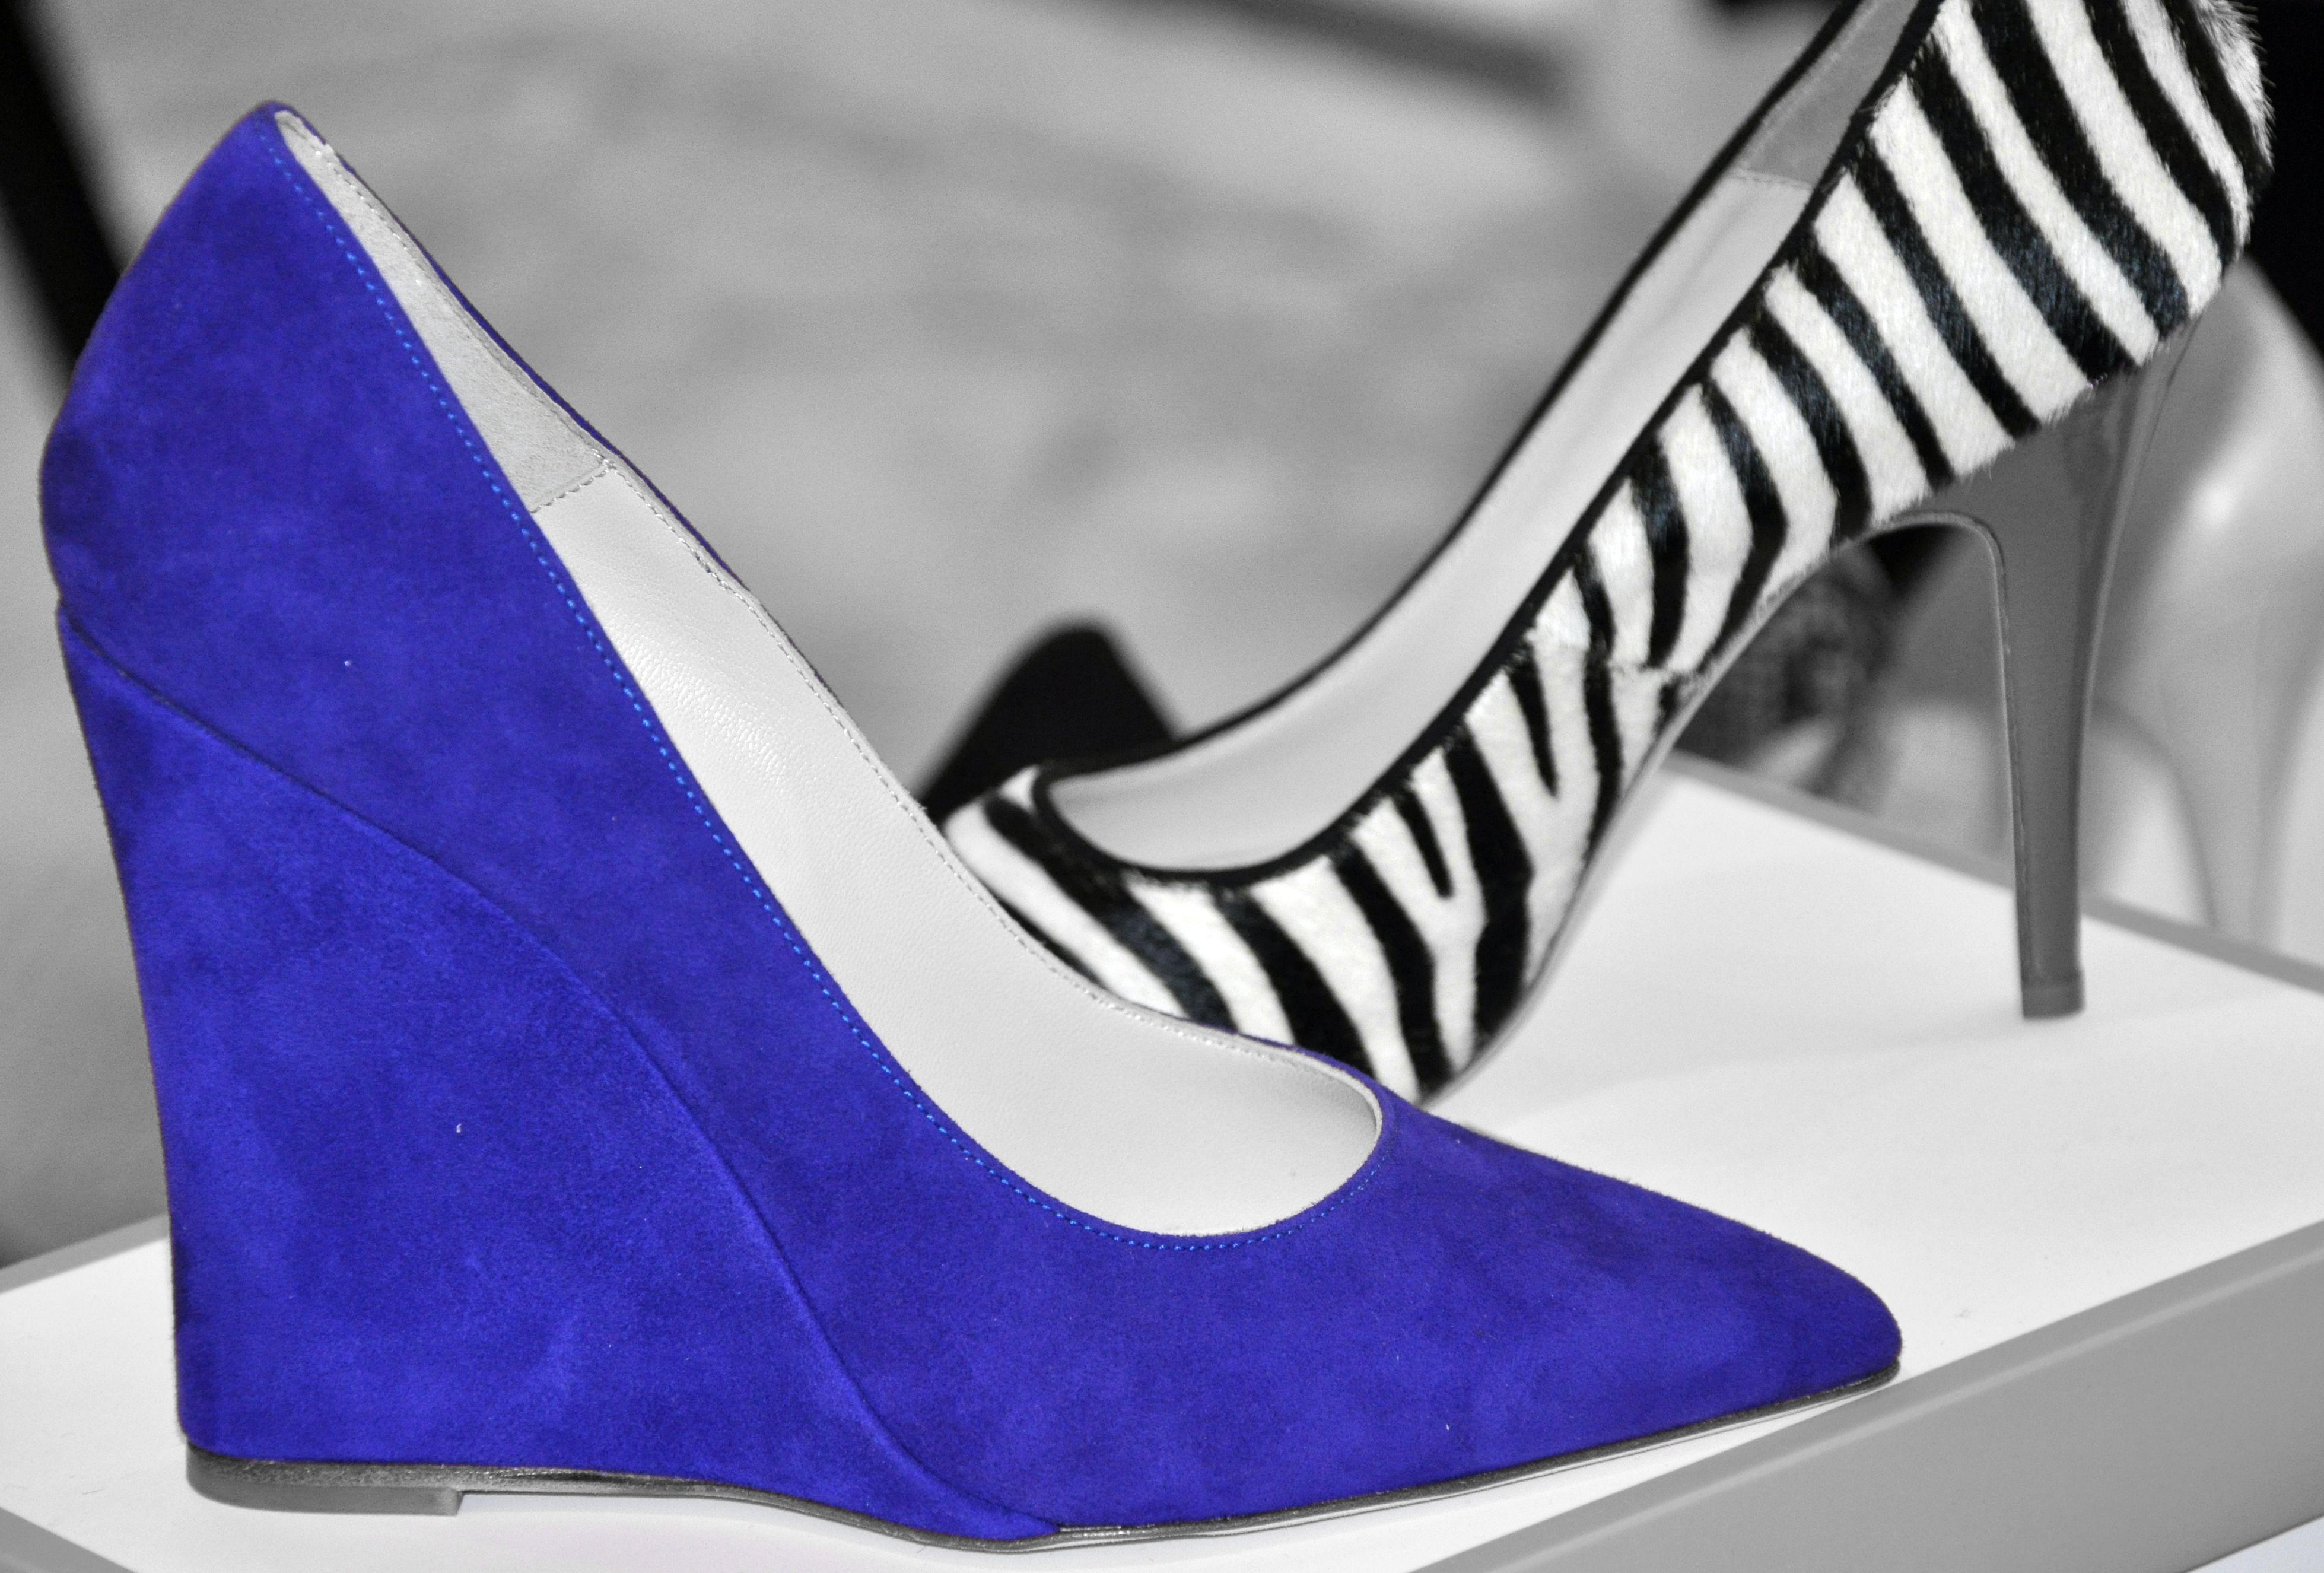 Concept Store, House of Cases, Press Night, Shoes